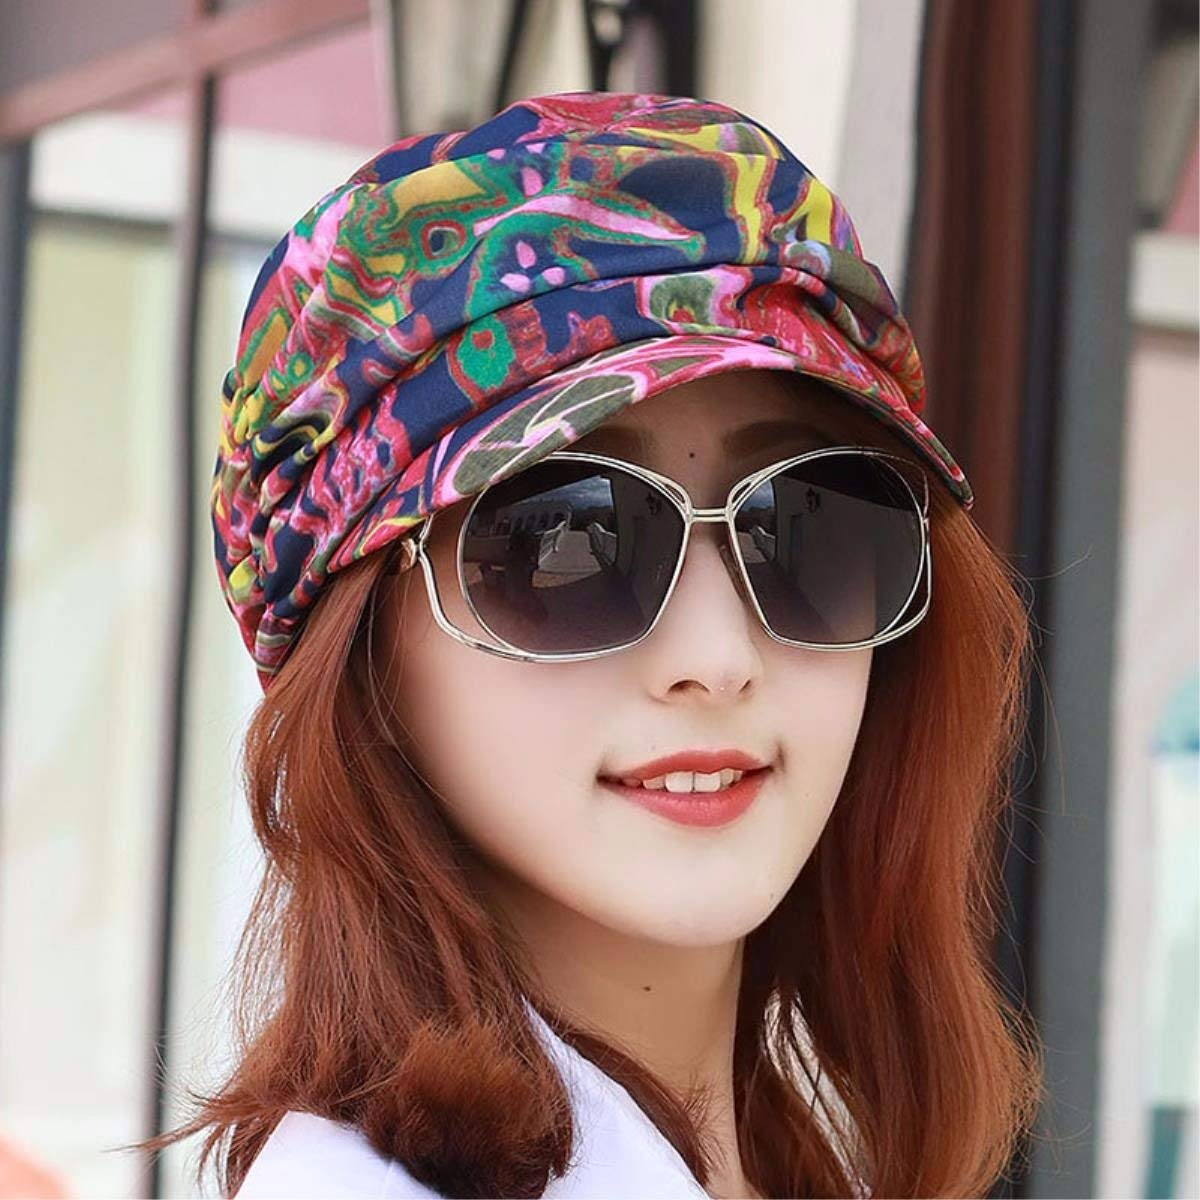 G BRNEBN Hat female spring and summer cap flat top hat visor beach hat sun cap out of play.